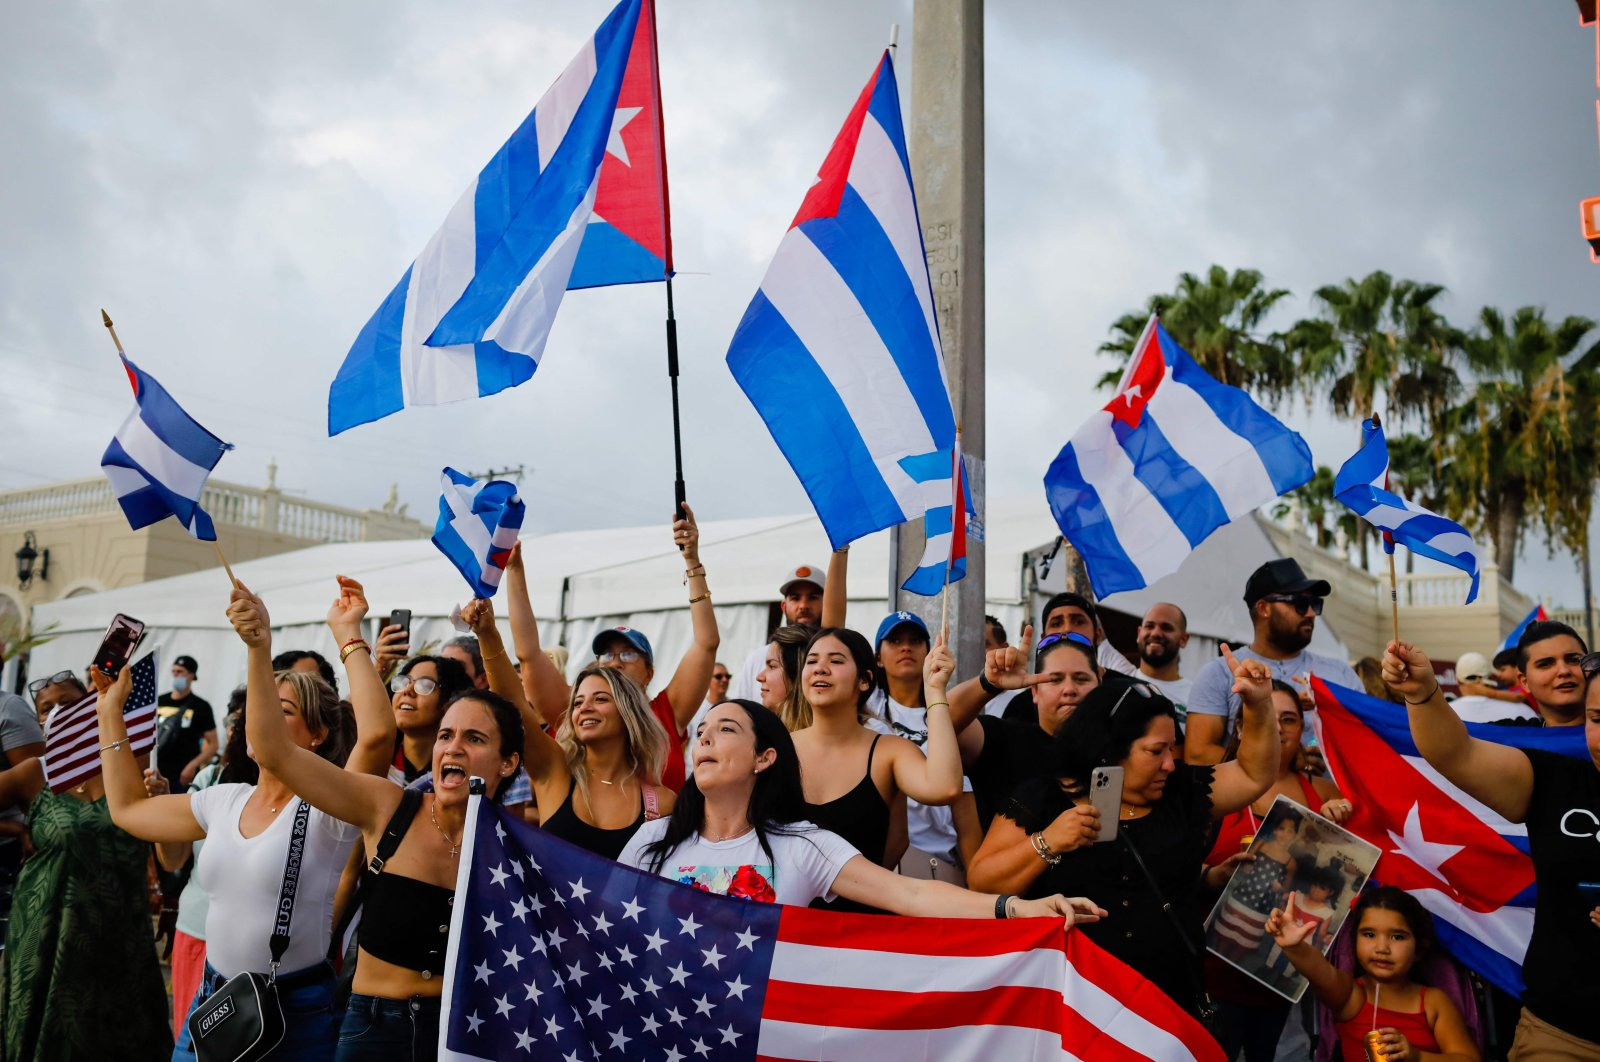 People demonstrate, some holding Cuban and US flags, during a protest against the Cuban government at Versailles Restaurant in Miami, Florida, July 12, 2021.(Photo by Eva Marie UZCATEGUI / AFP)